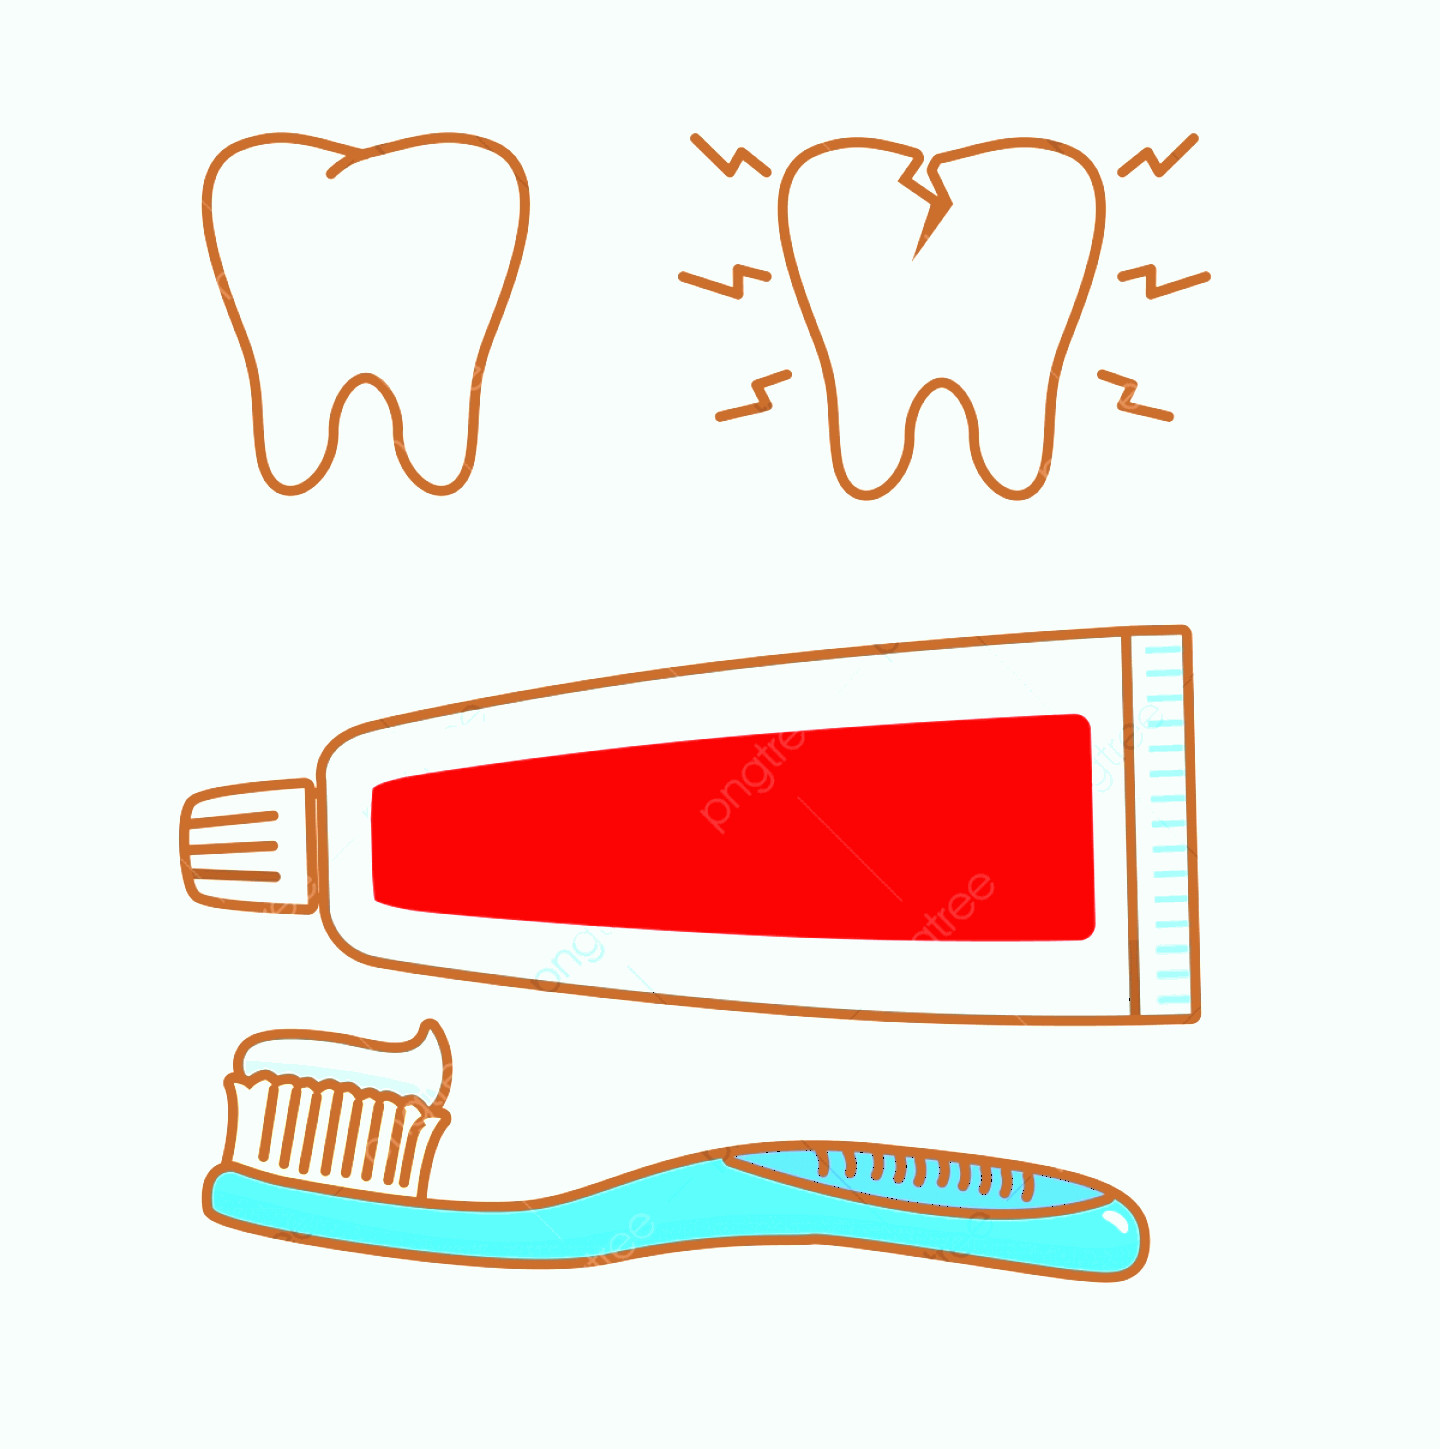 Toothpaste Cartoon Vector: Toothpaste And Toothbrush Vector Illustration With Cute Design